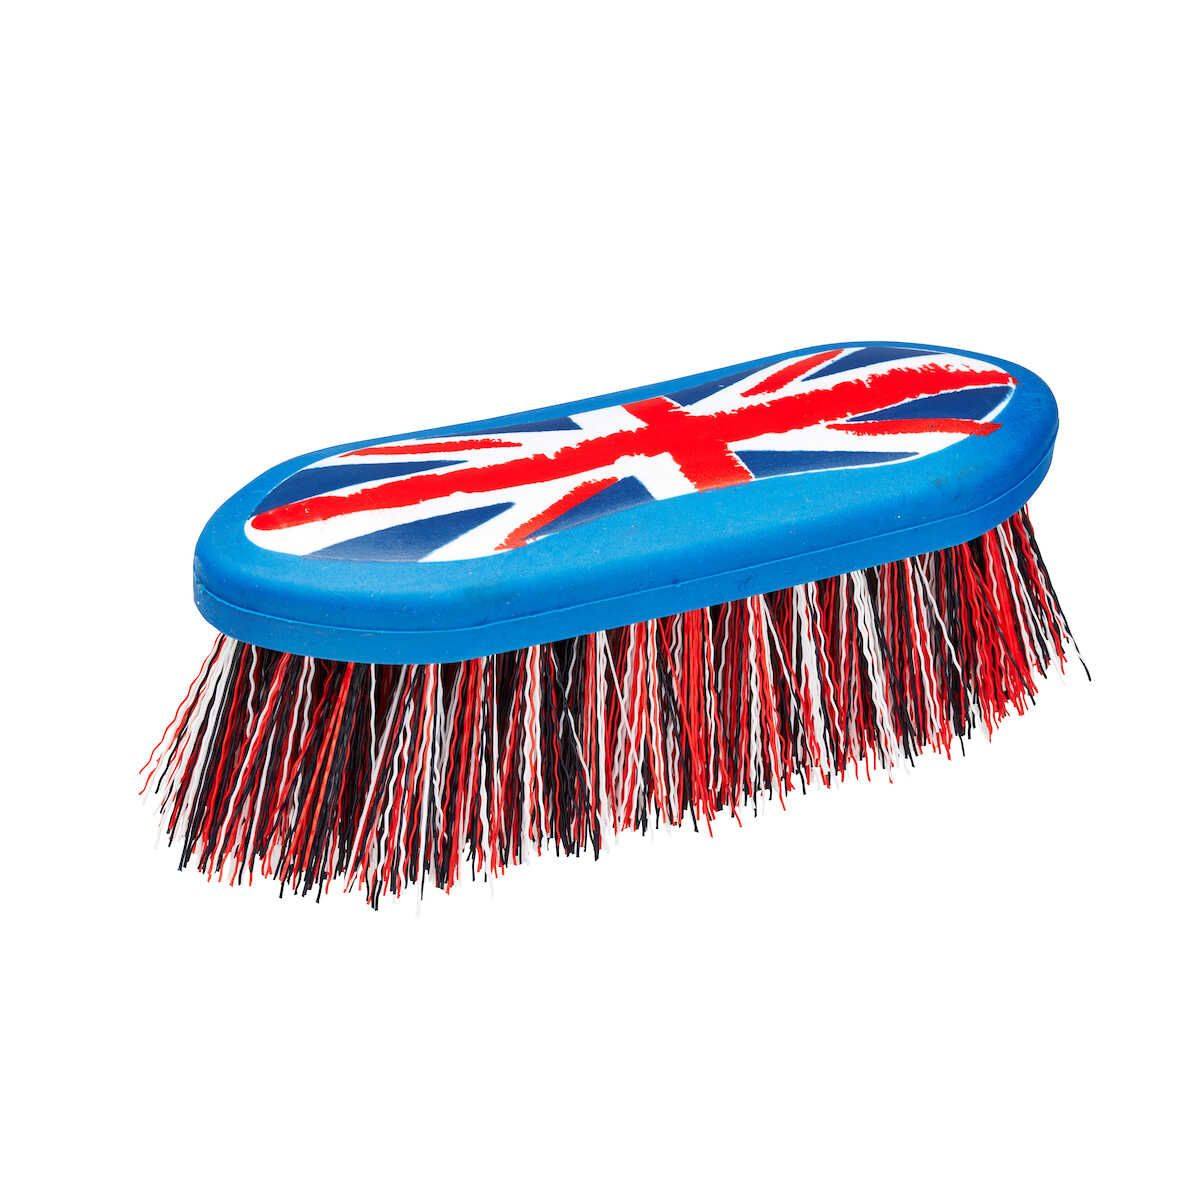 Cottage Craft Small Dandy Grooming Brush